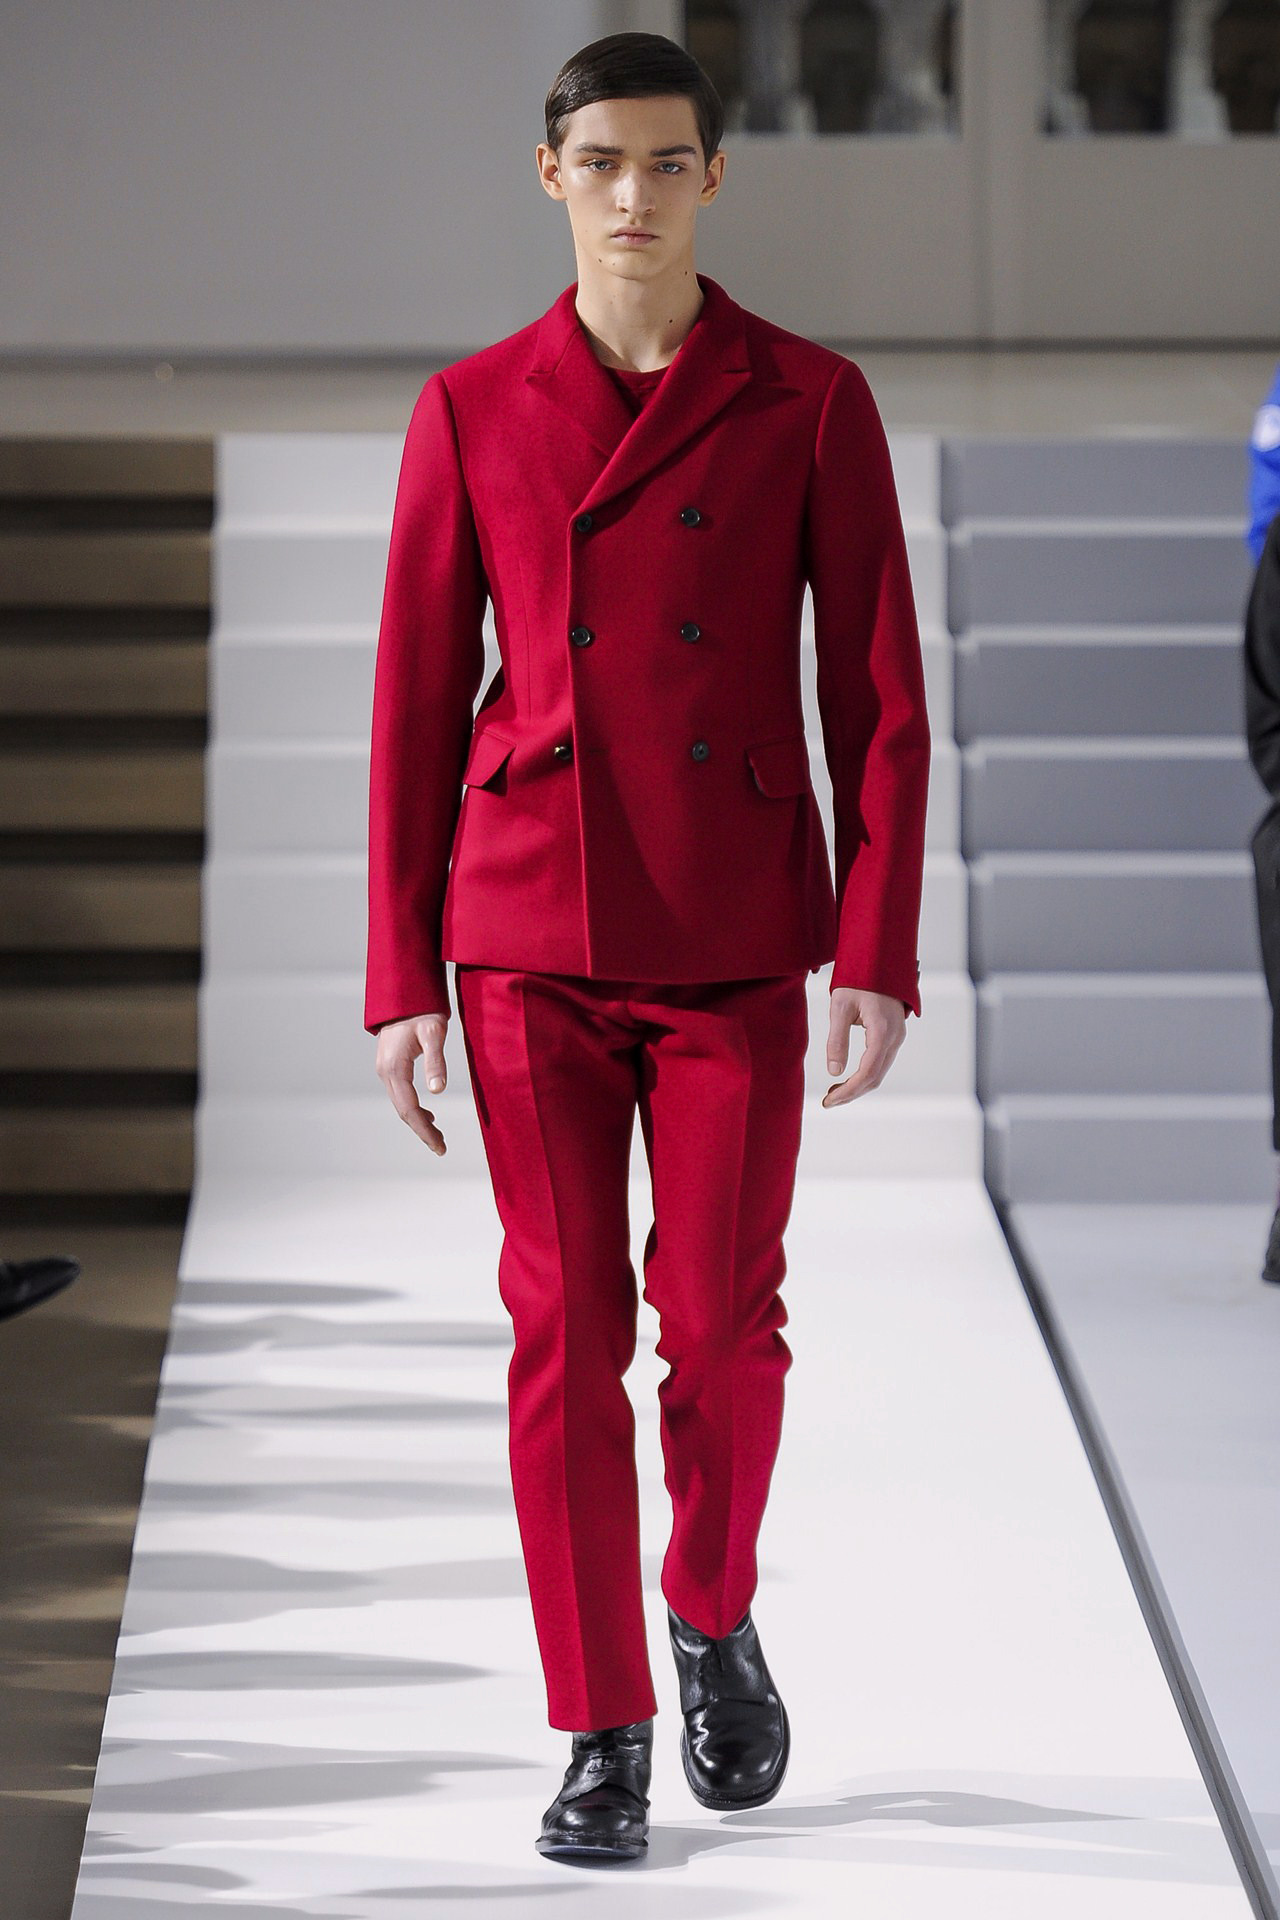 Jil Sander Menswear Fall/Winter 2013-14